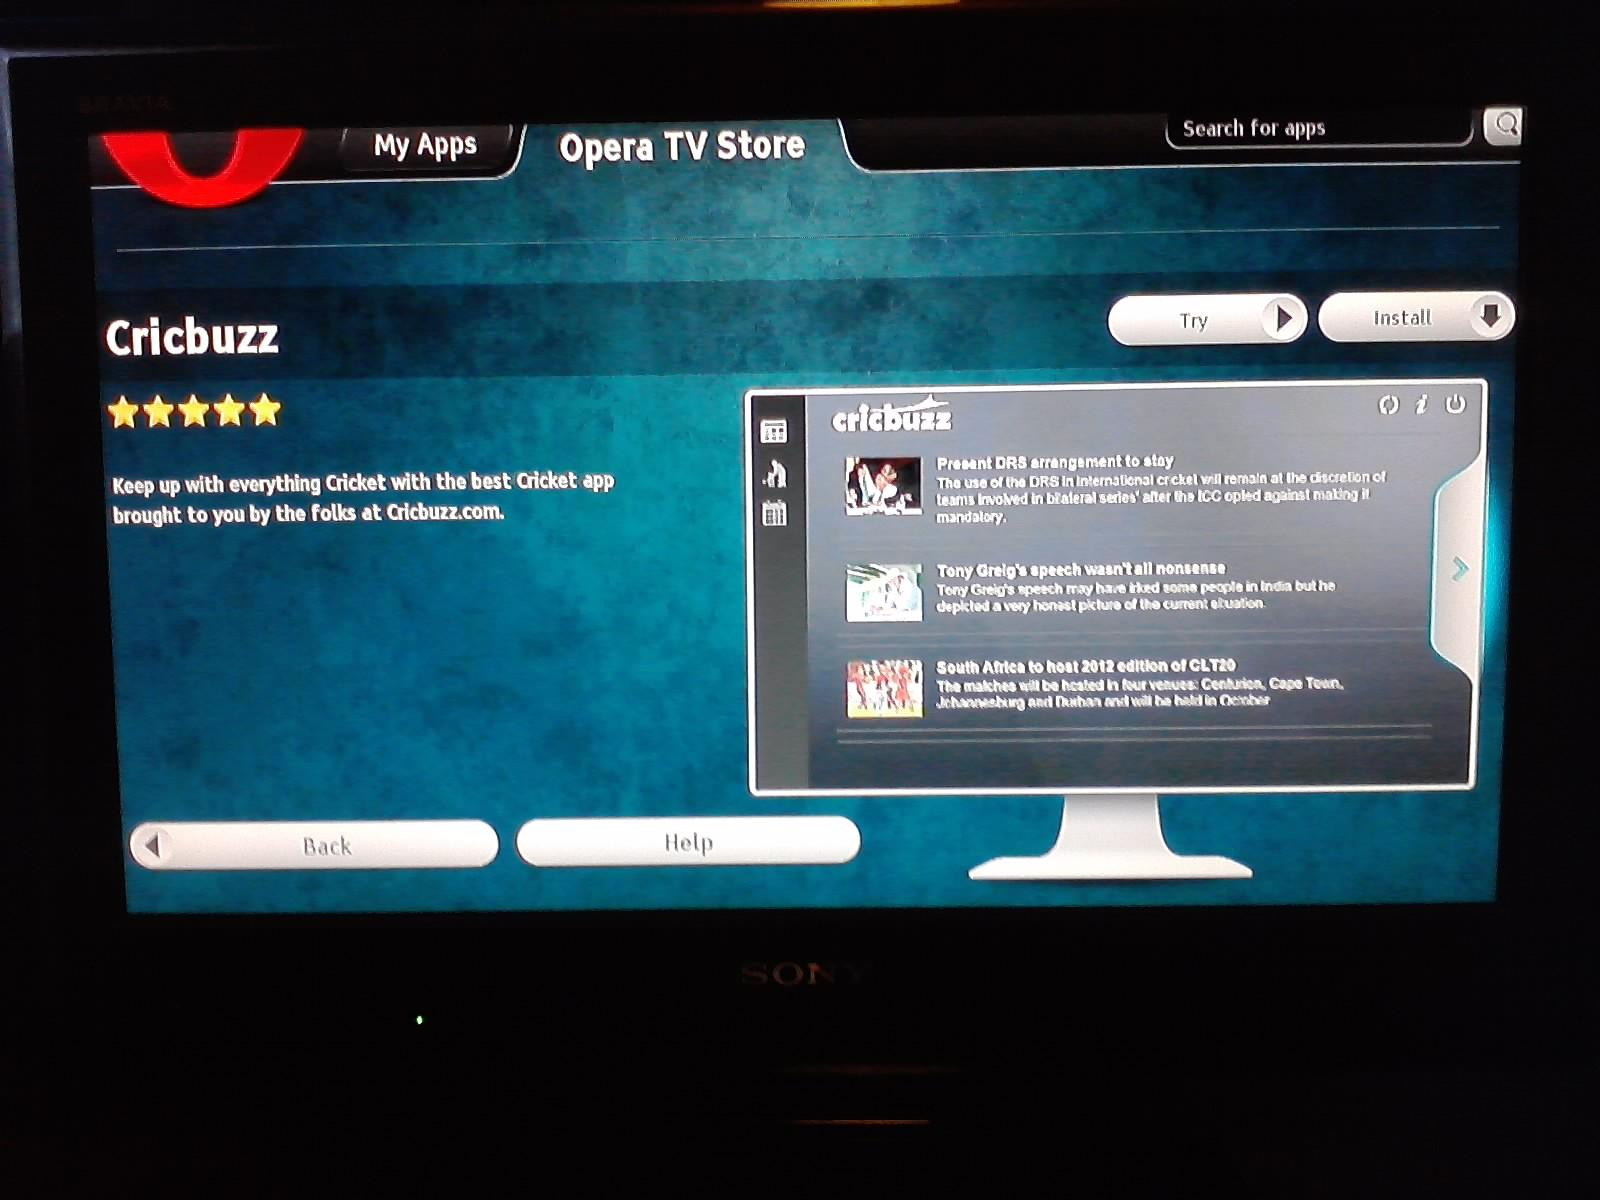 bravia internet video smart tv from sony opera tv store